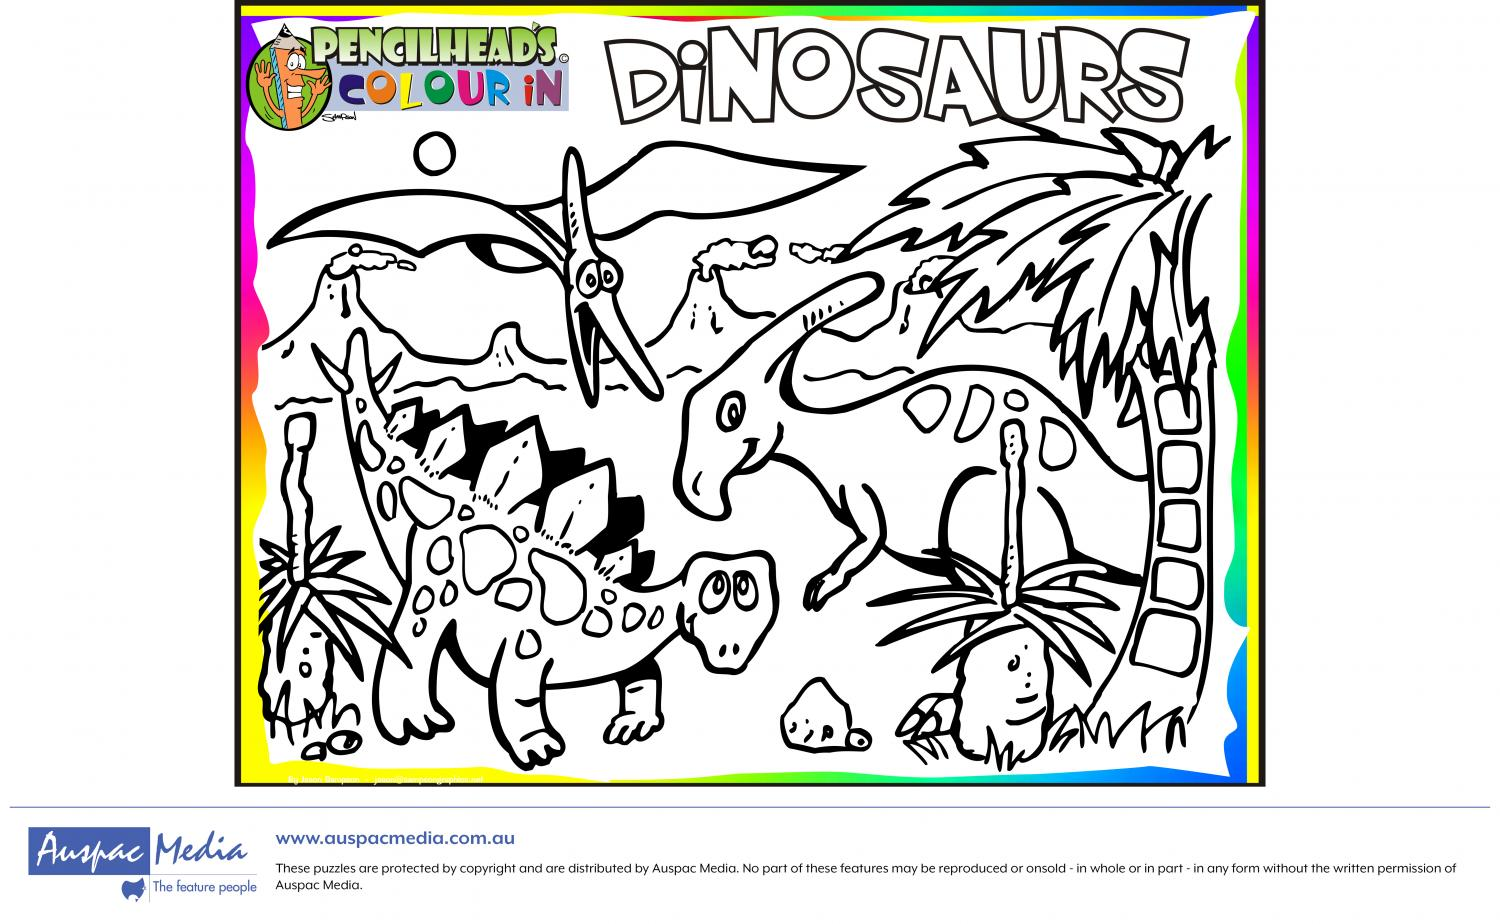 Thumbnail for Pencilhead's Colour-In